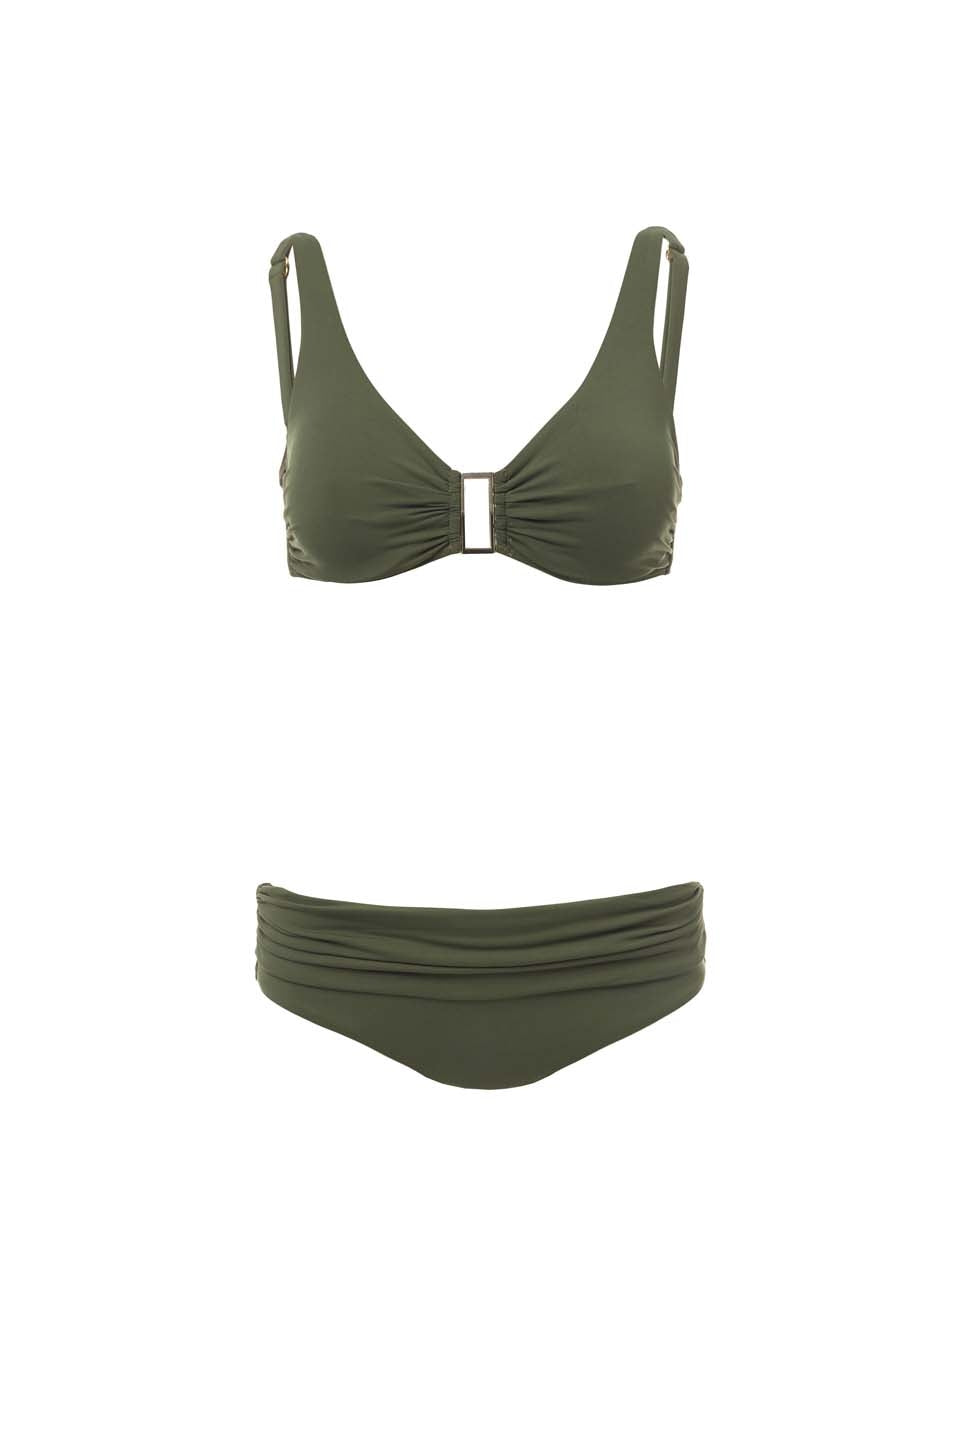 Belair Khaki Over The Shoulder Supportive Bikini